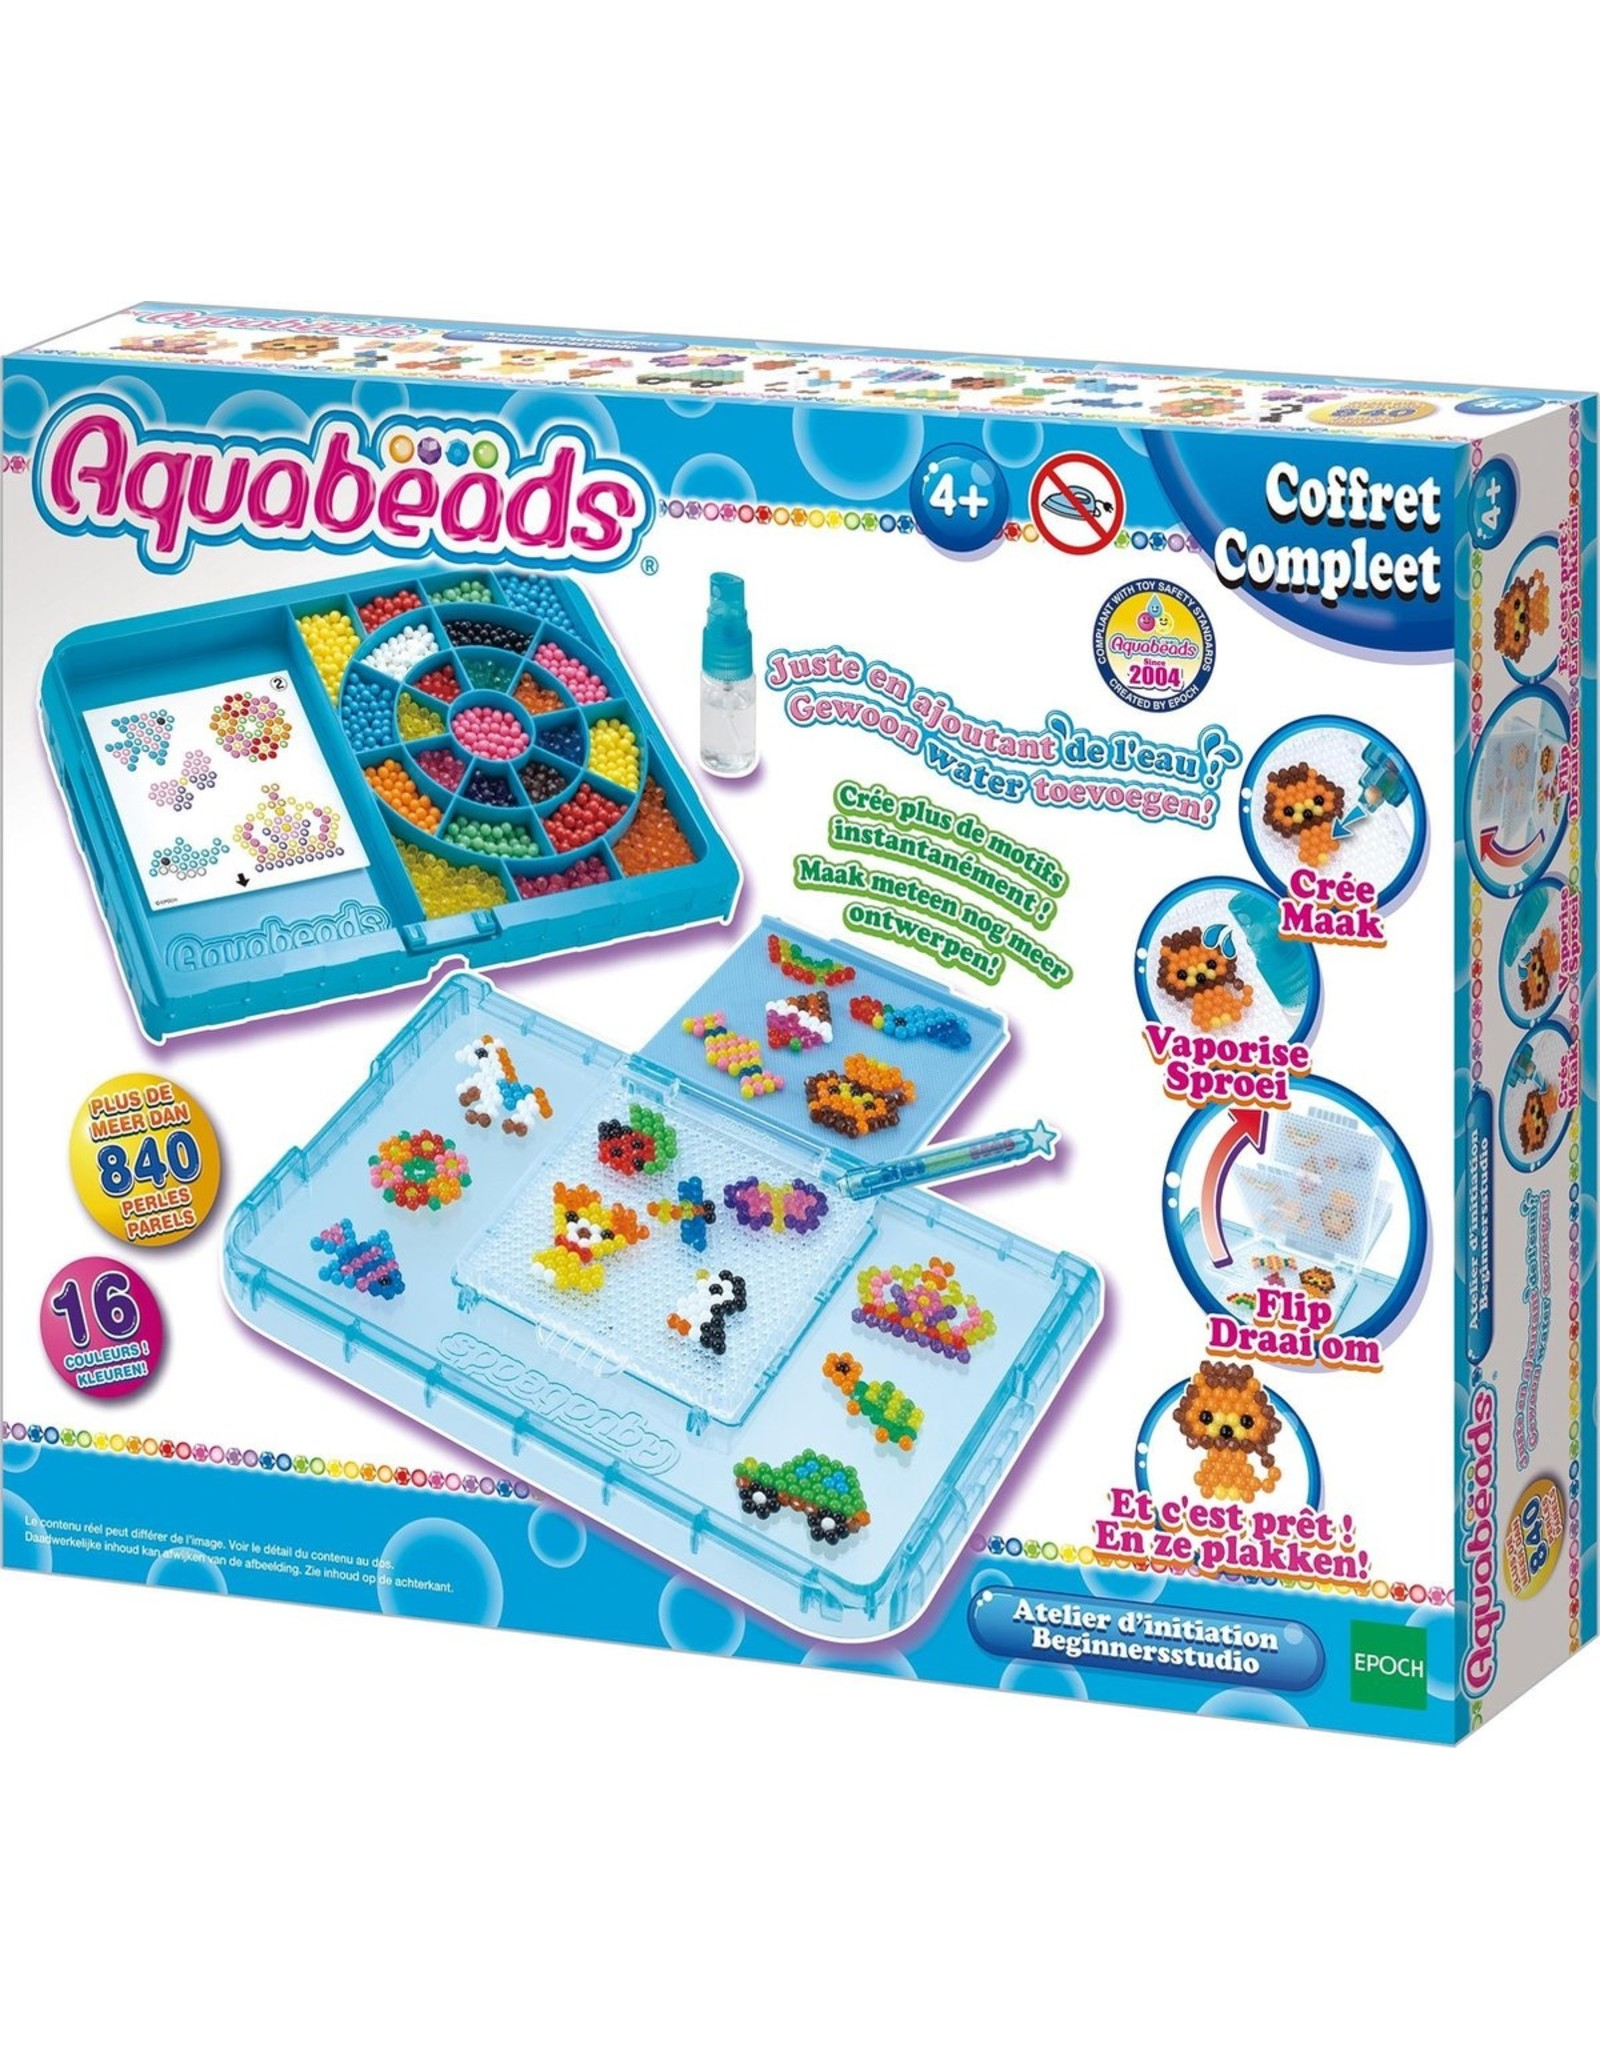 Aquabeads Aquabeads Beginnersstudio